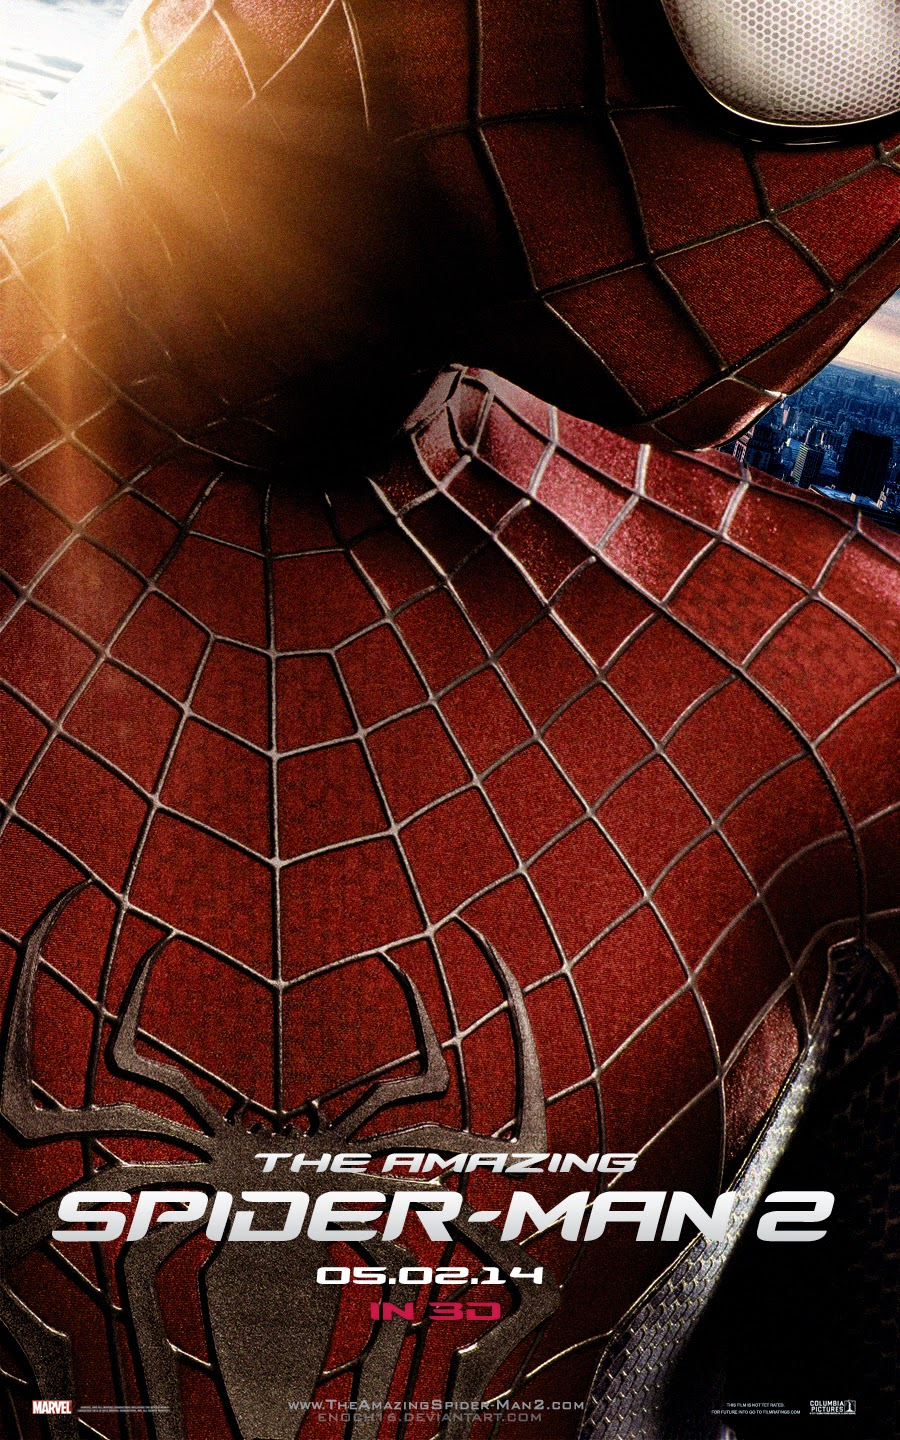 spider man amazing poster download torrent watch free online movie